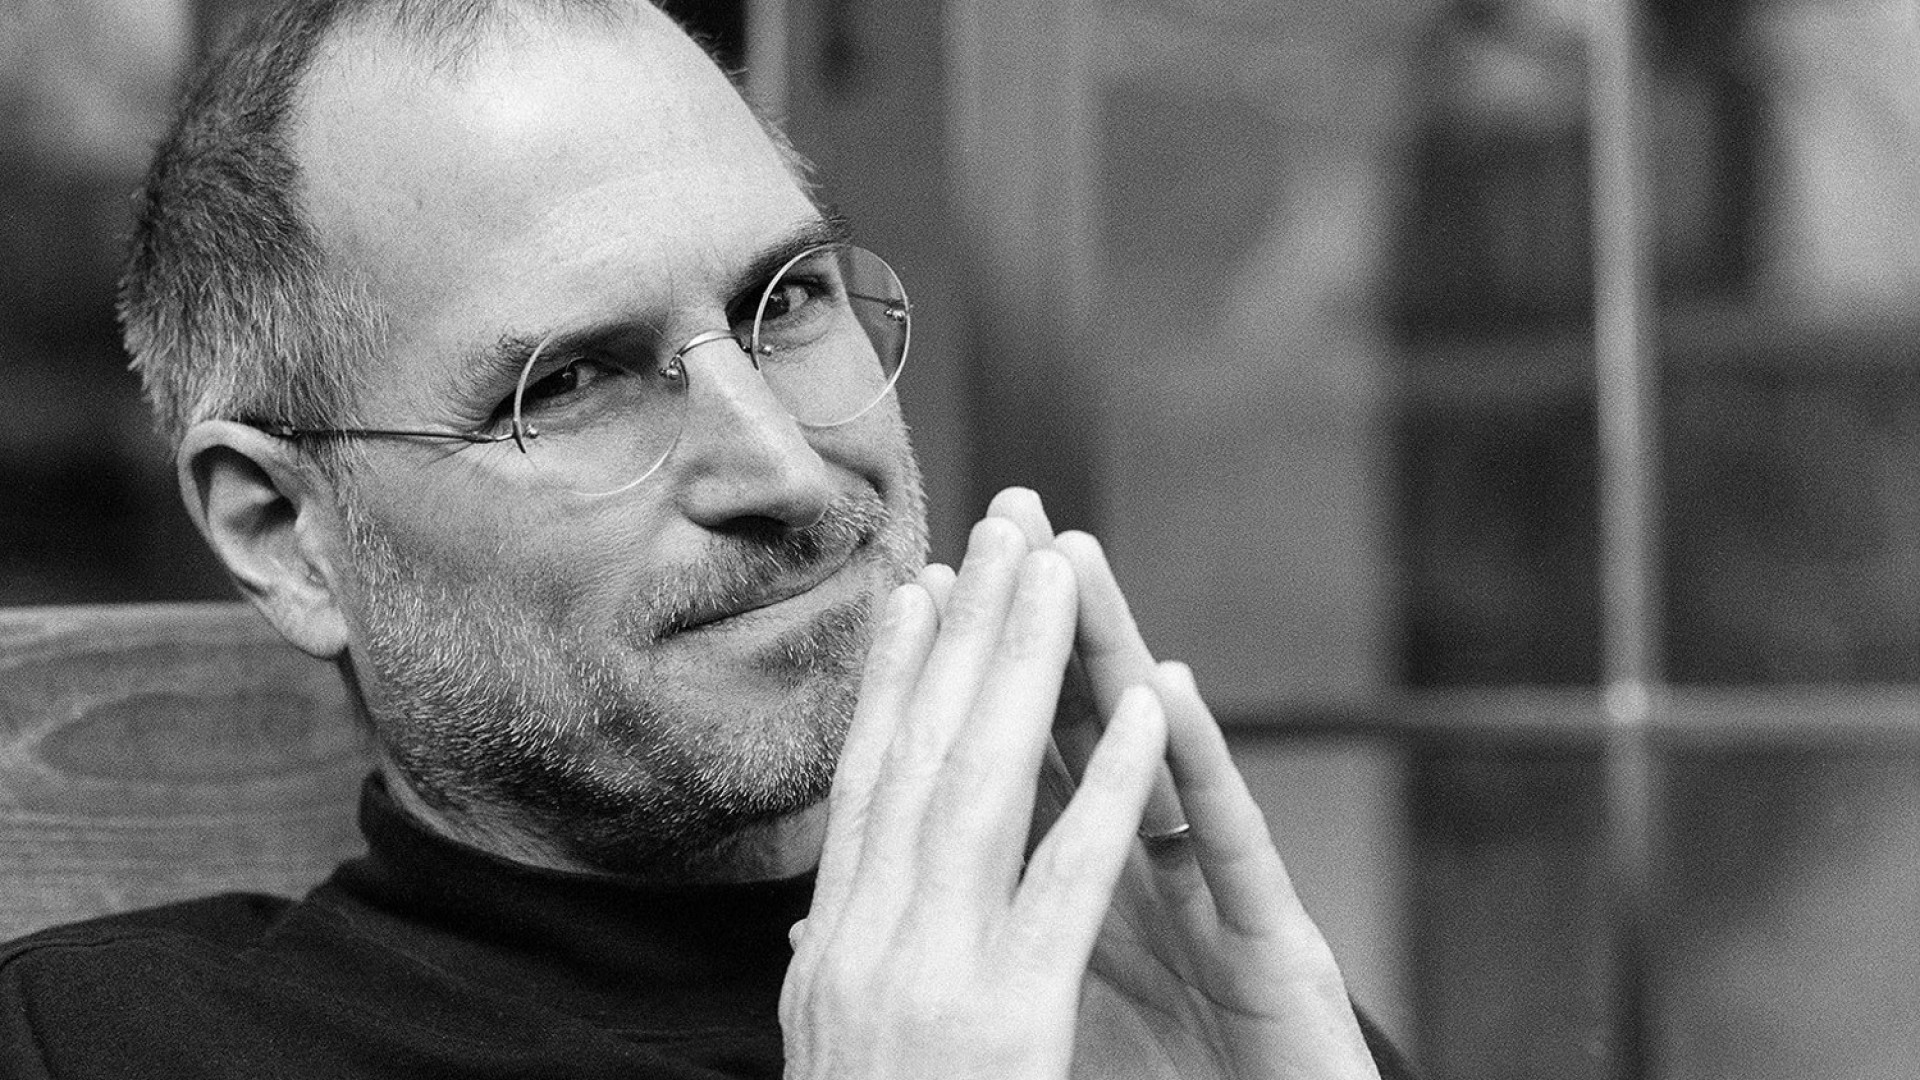 Steve Jobs : Biography, Essay, Article, Profile